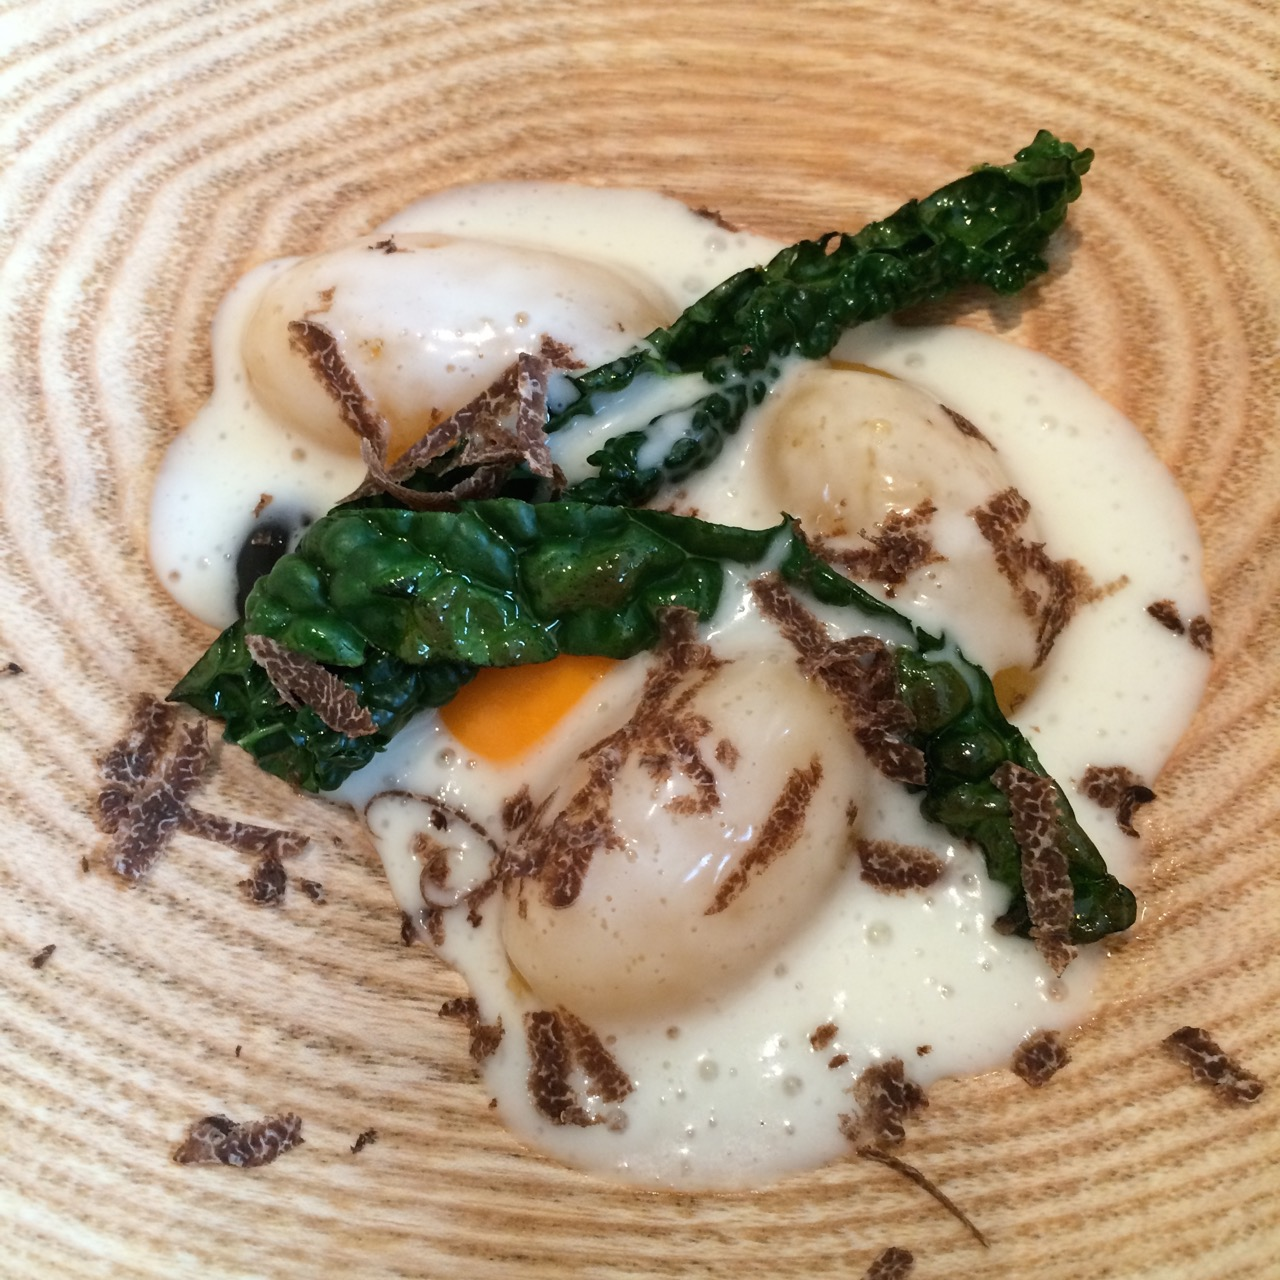 Swede dumplings, Isle of Mull cheese and truffle